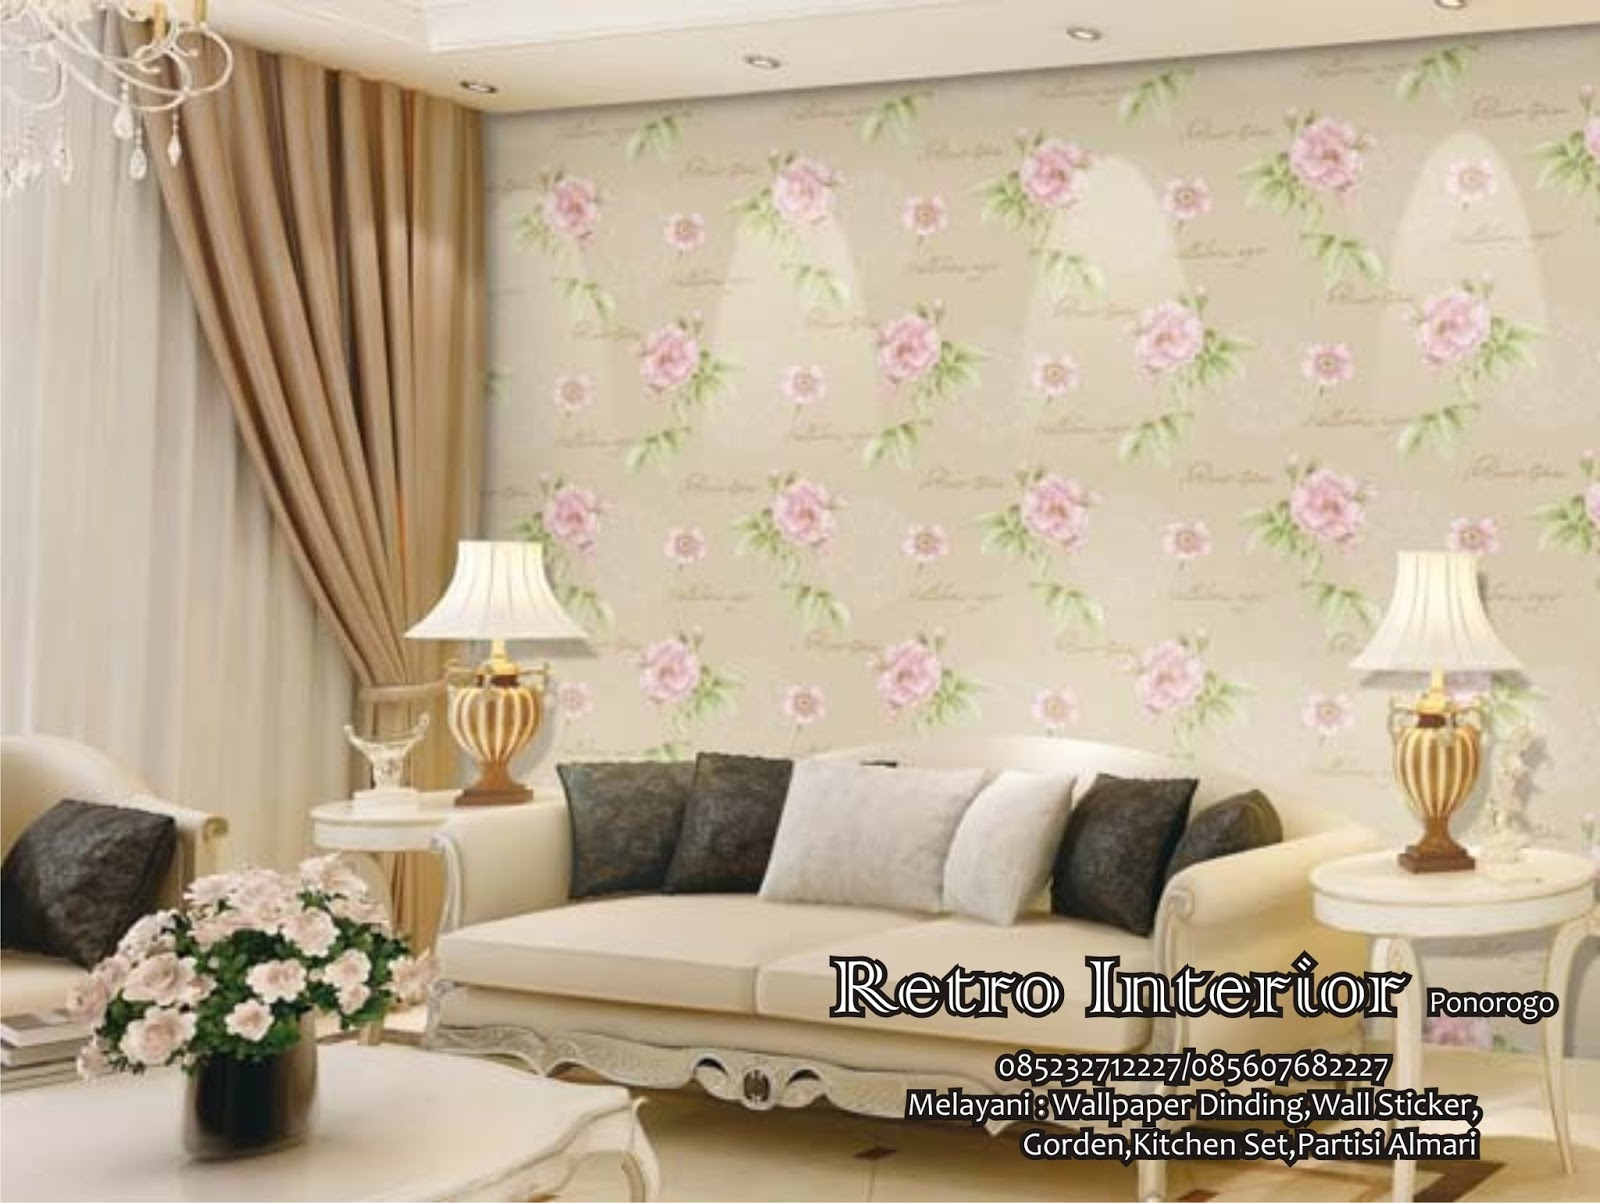 Retro Wallpaper Dinding Wa 081335372227 Tlp 085232712227 Januari 2016